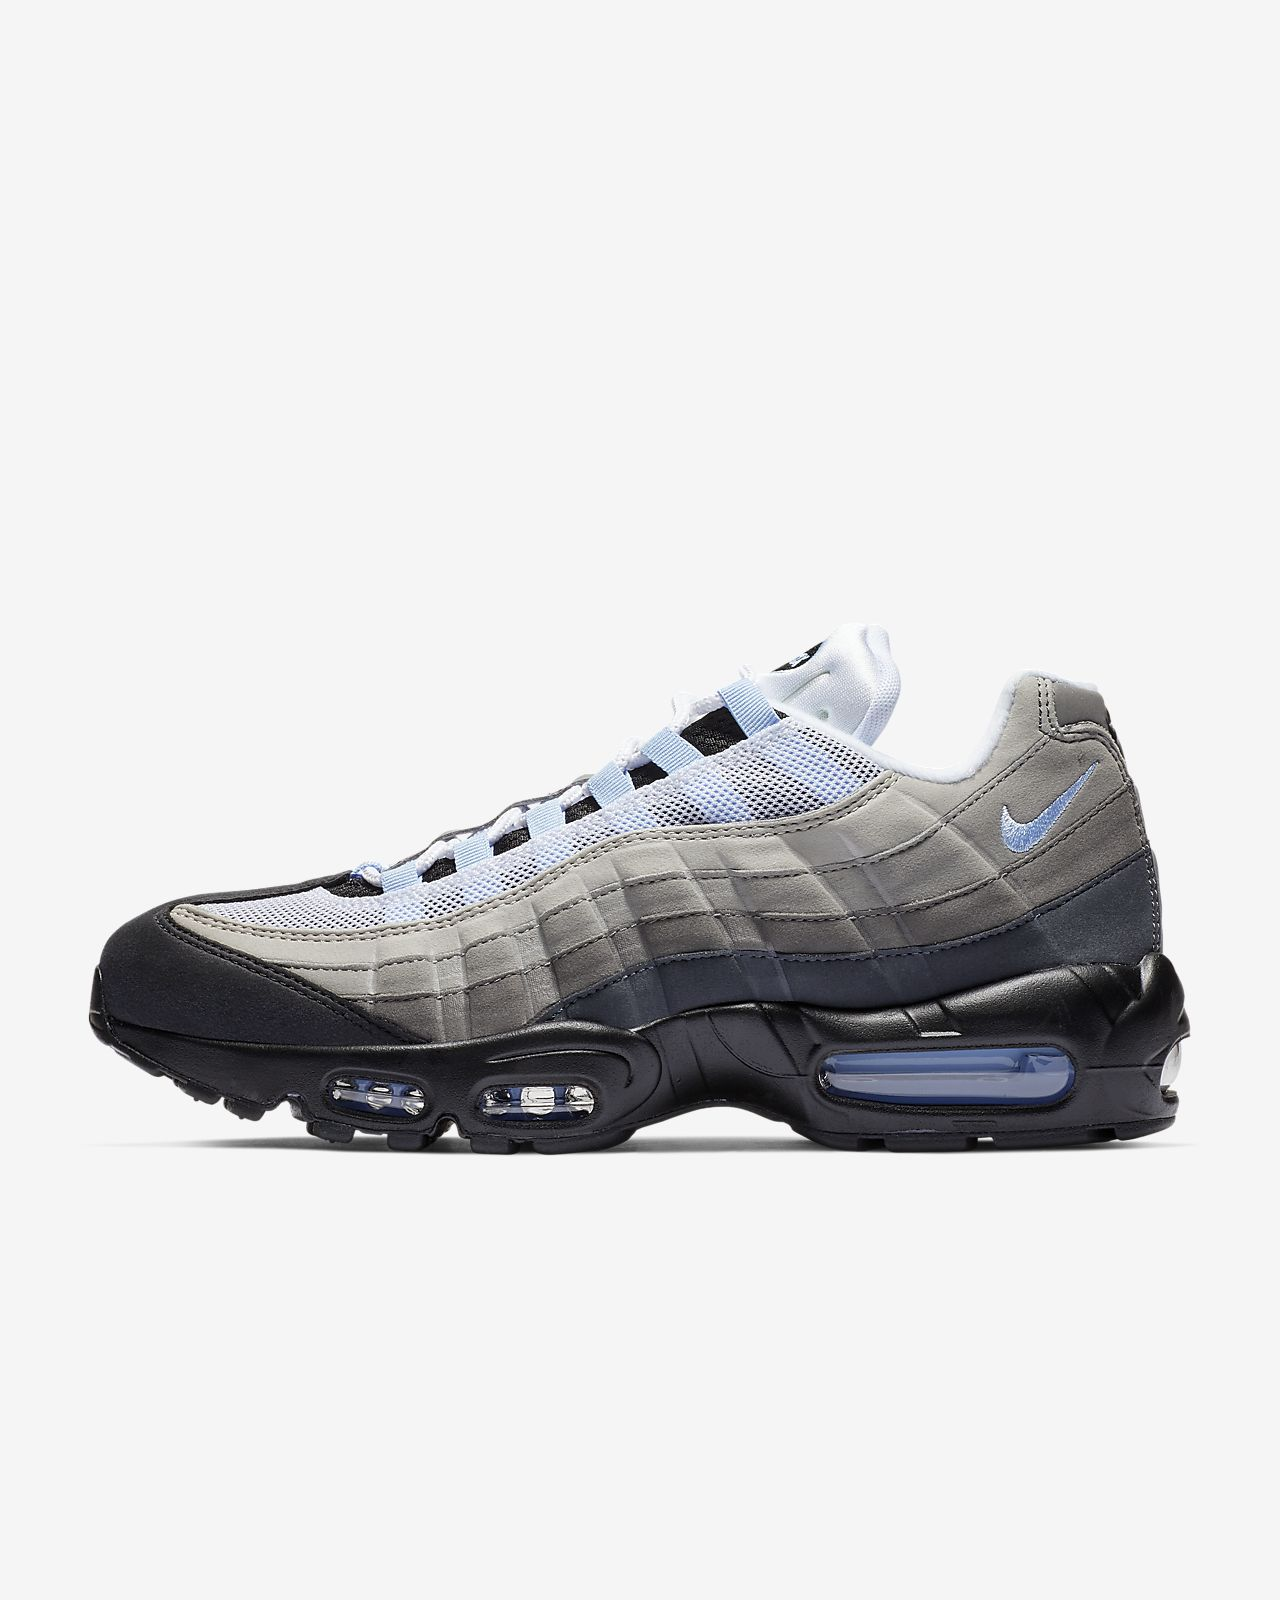 timeless design 78aba b5778 ... Chaussure Nike Air Max 95 pour Homme